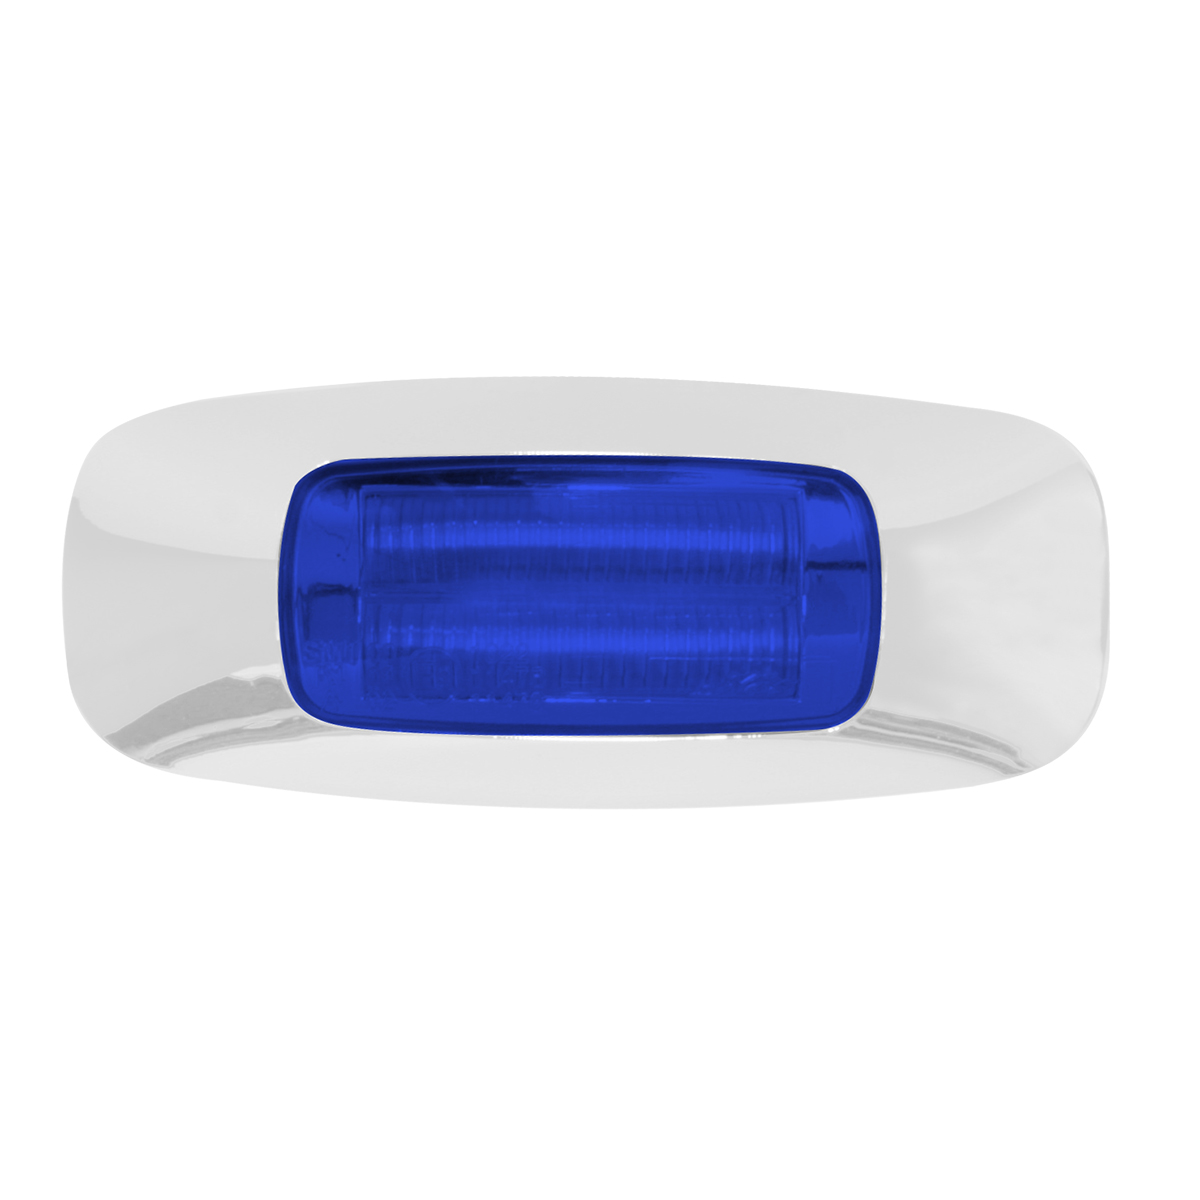 "74825 3.5"" Rectangular Prime LED Marker Light in Blue/Blue"